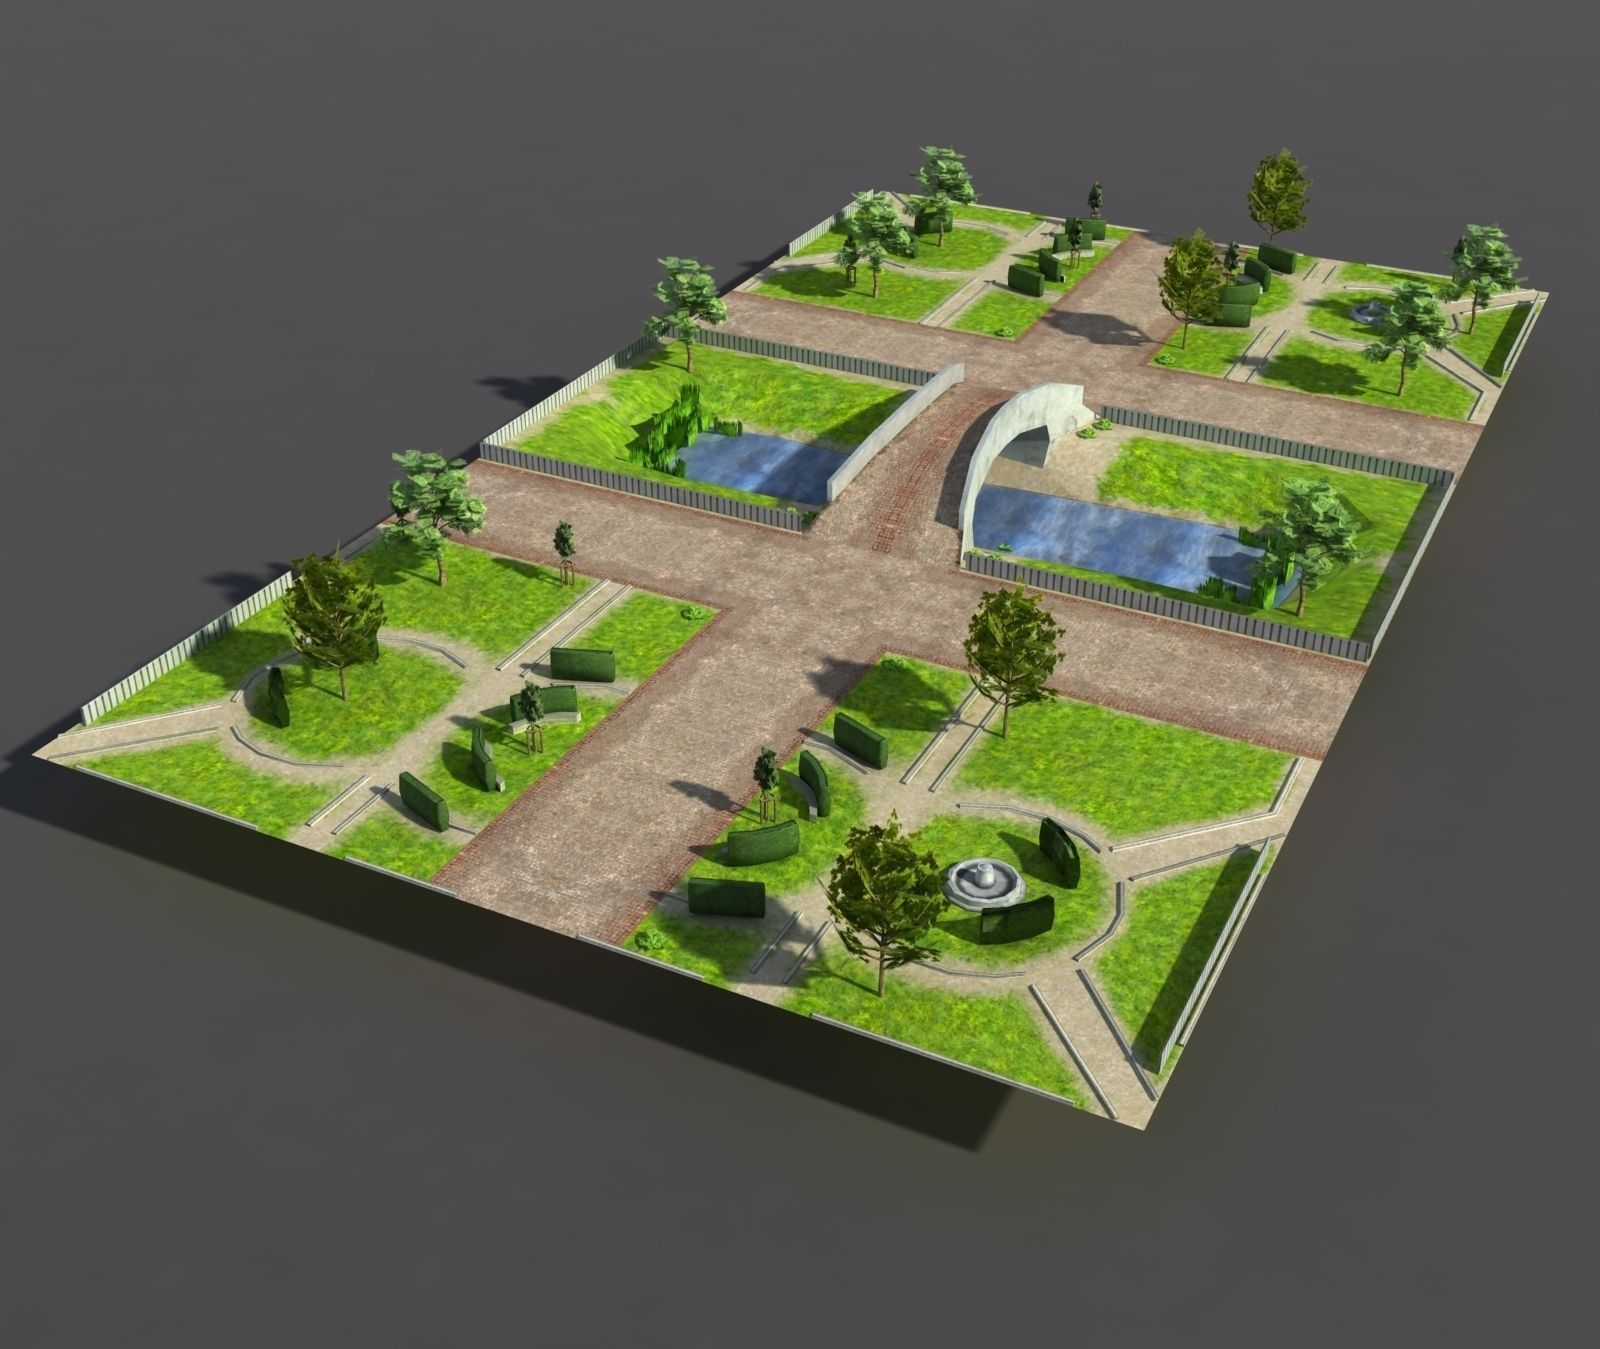 3d model low poly park vr ar low poly max obj 3ds lwo for Garden design in 3ds max